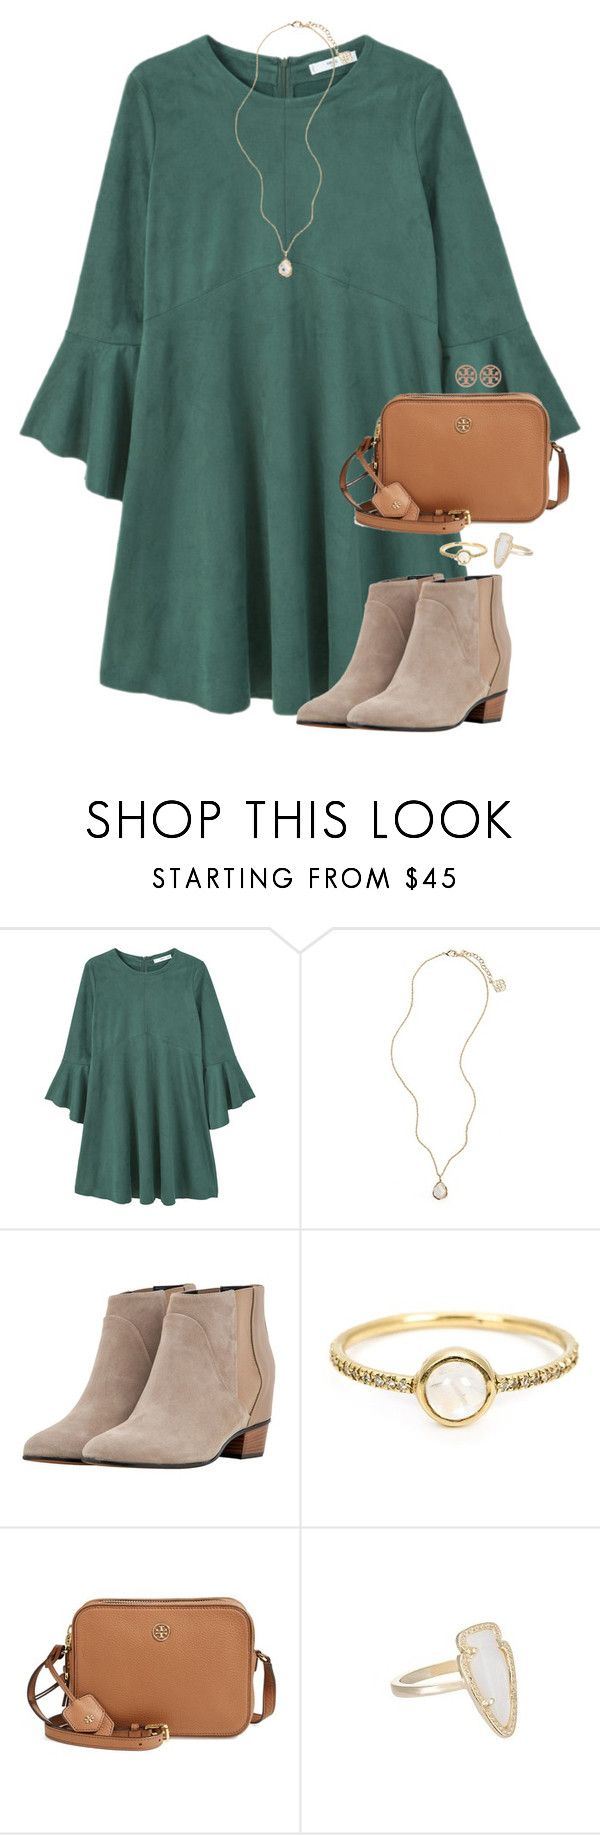 """By the grace of God."" by amberfmillard-1 ❤ liked on Polyvore featuring MANGO, Kendra Scott, Golden Goose, Irene Neuwirth and Tory Burch"